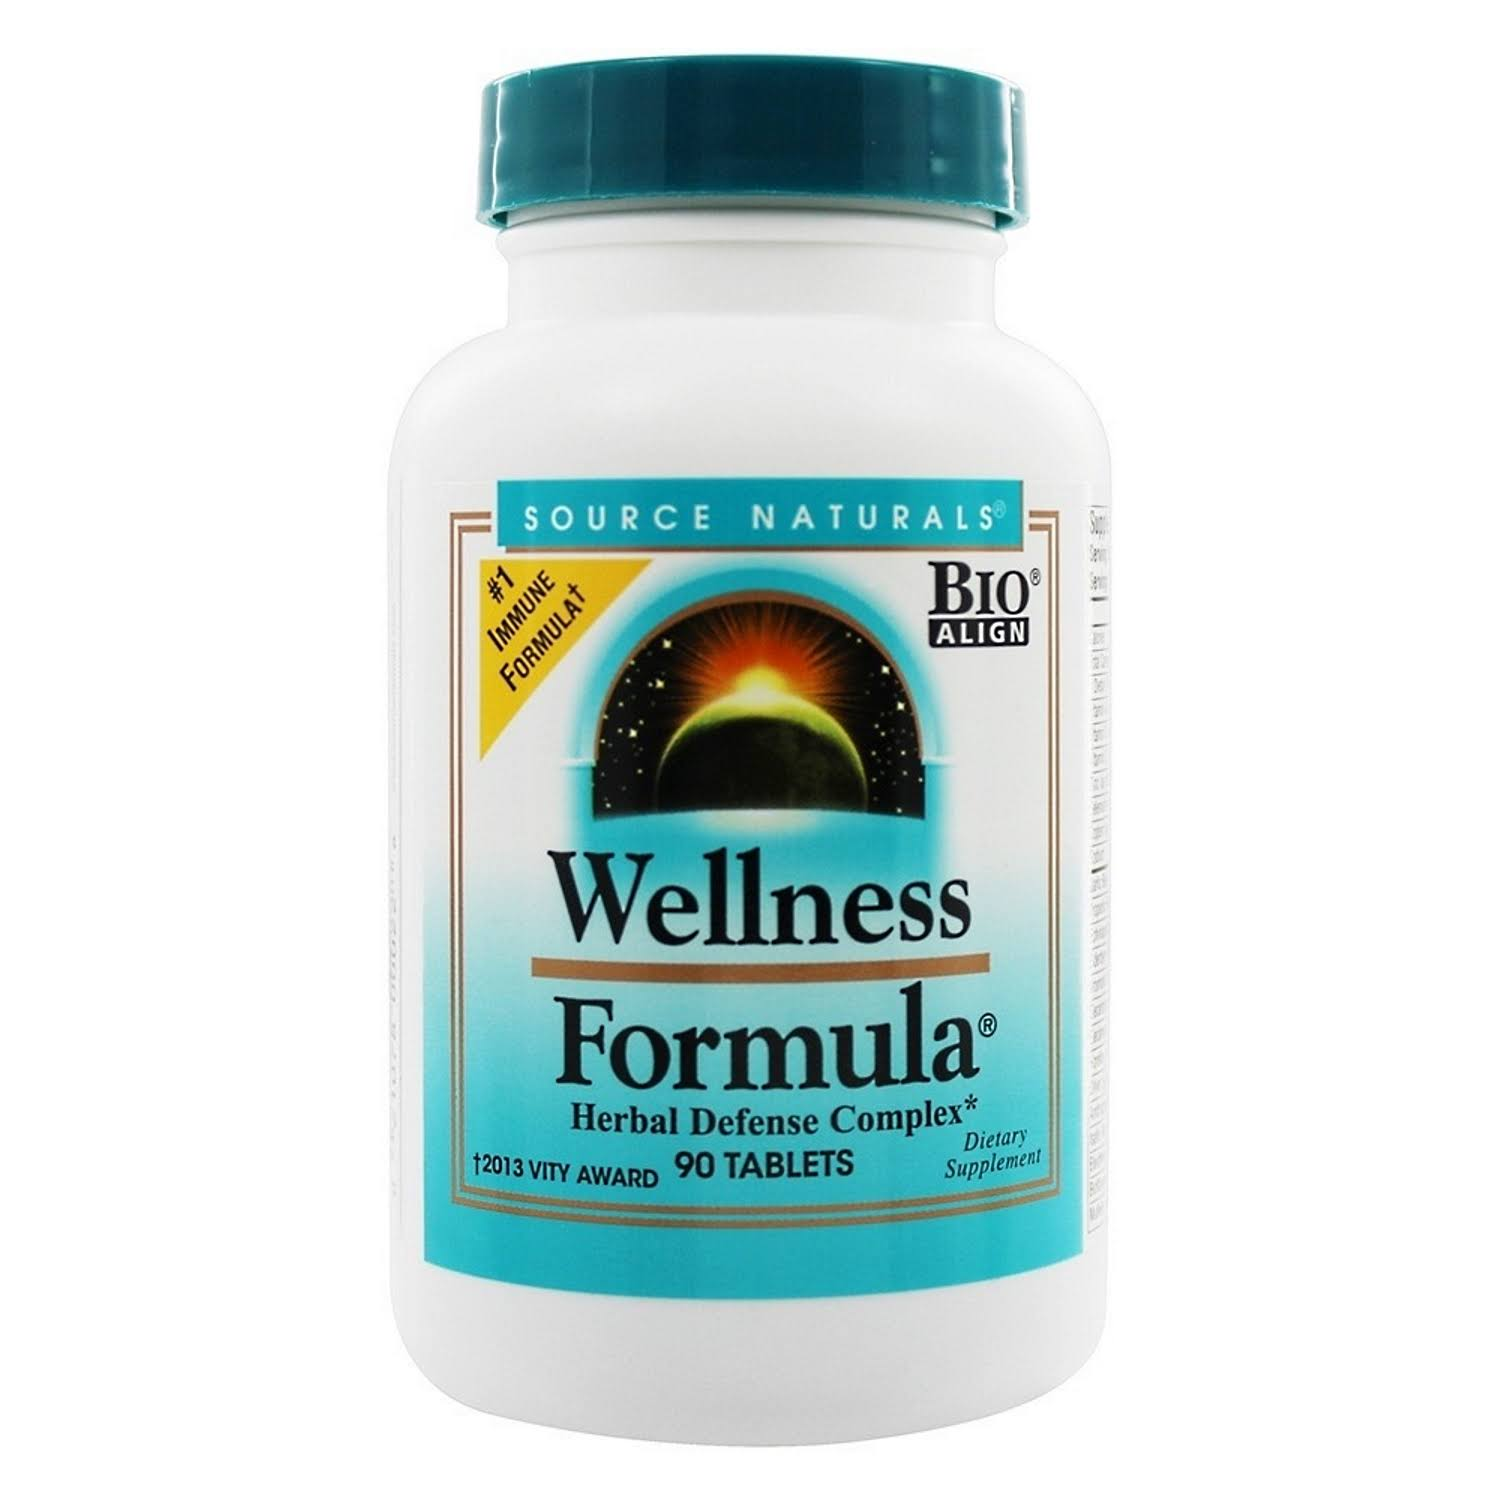 Source Naturals Wellness Formula Tablets - 90 count